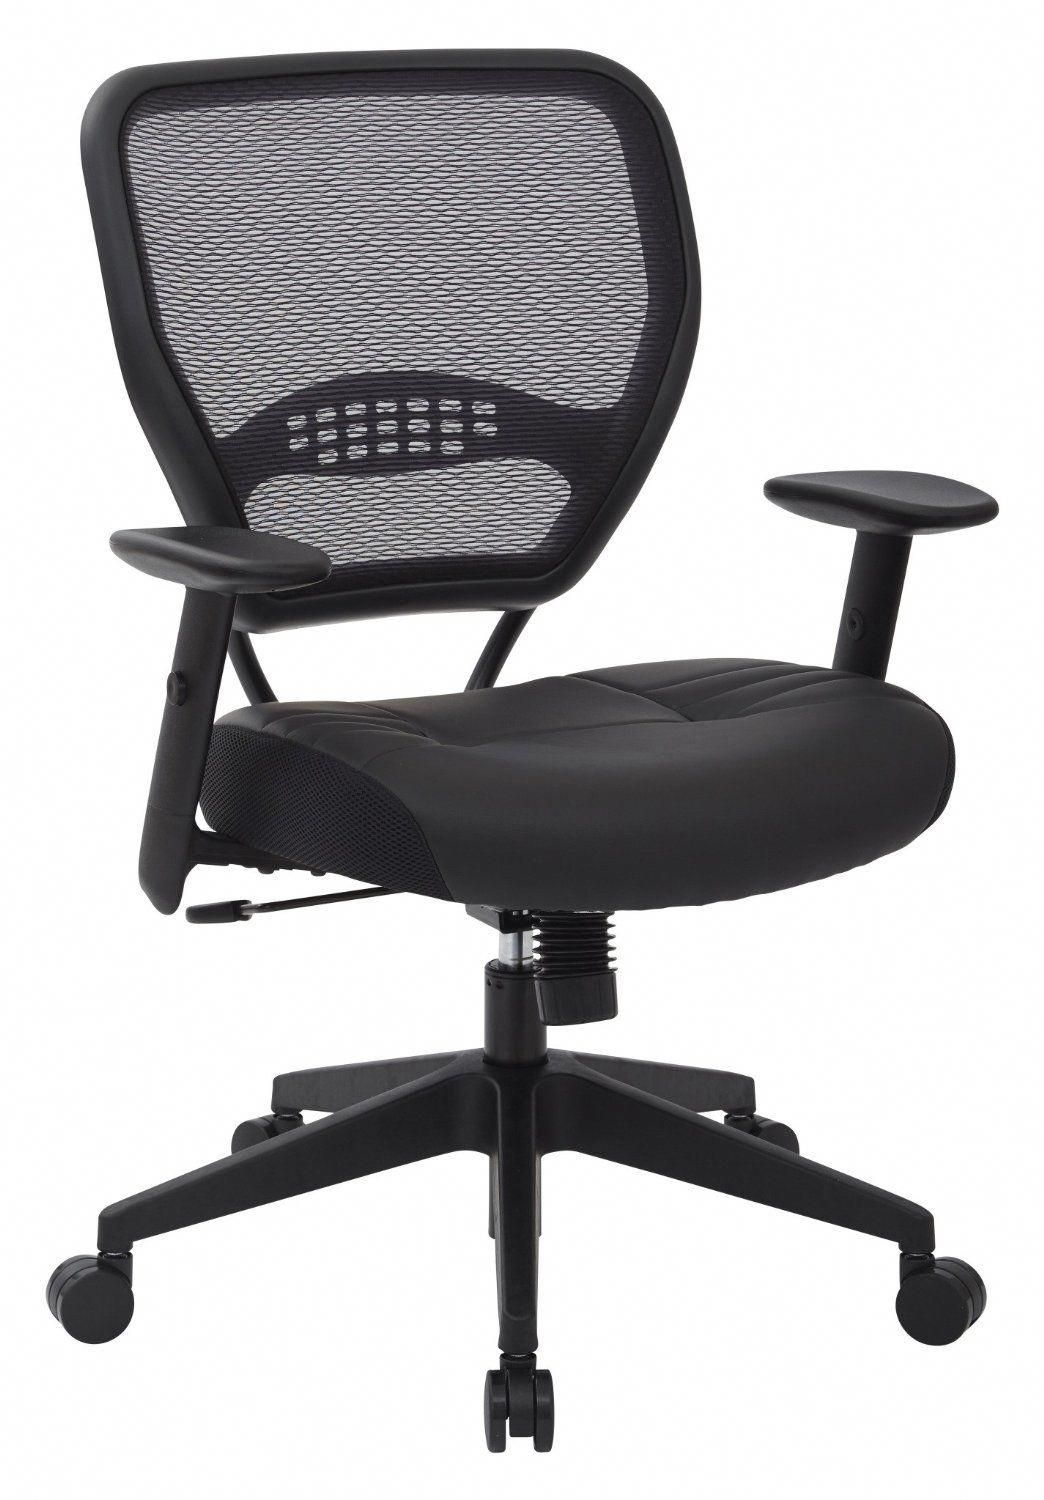 best ergonomic chairs 2016 small beach check this top 10 office in reviews bestofficechair